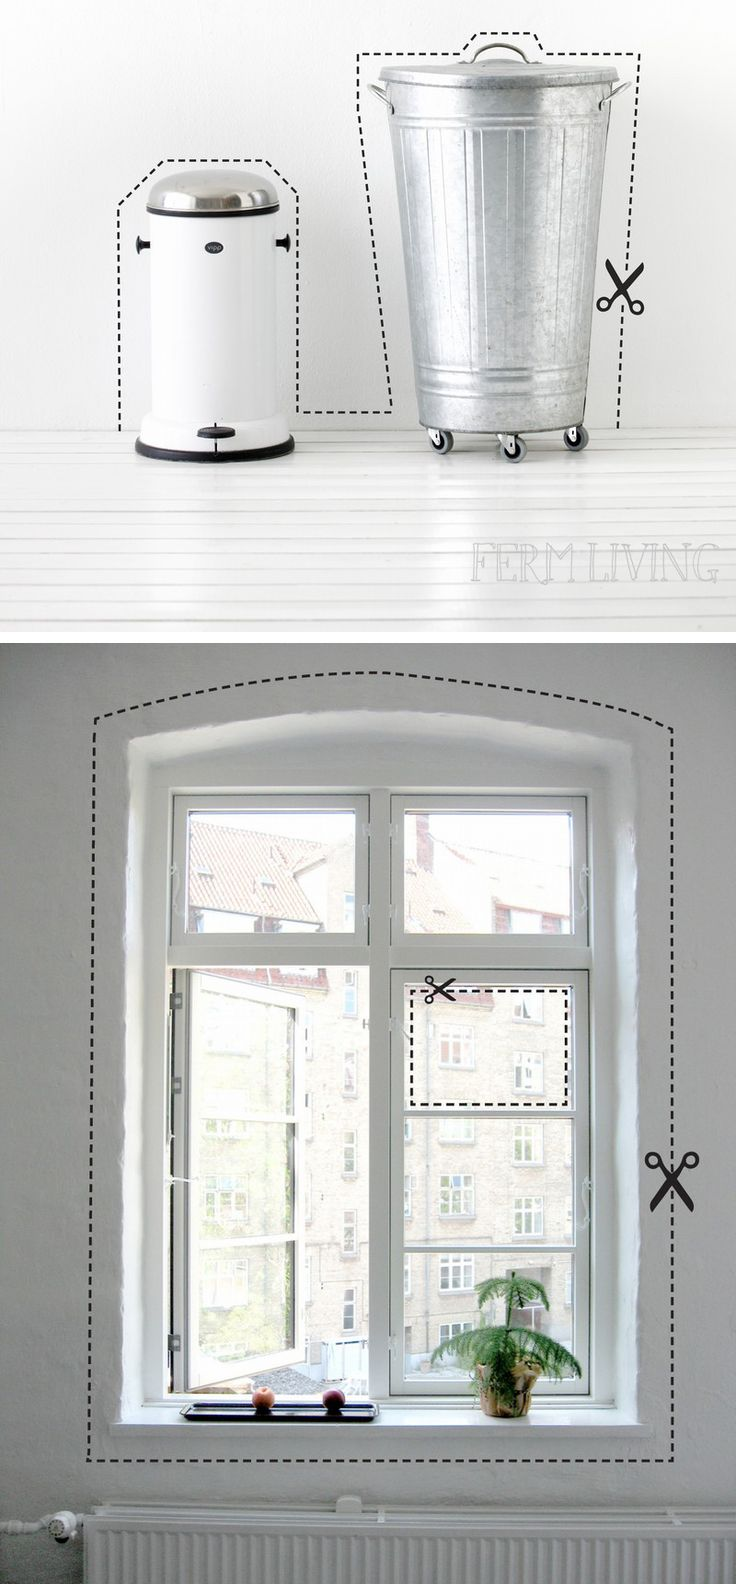 147 best sticker deco images on pinterest wall stickers cool wall stickers